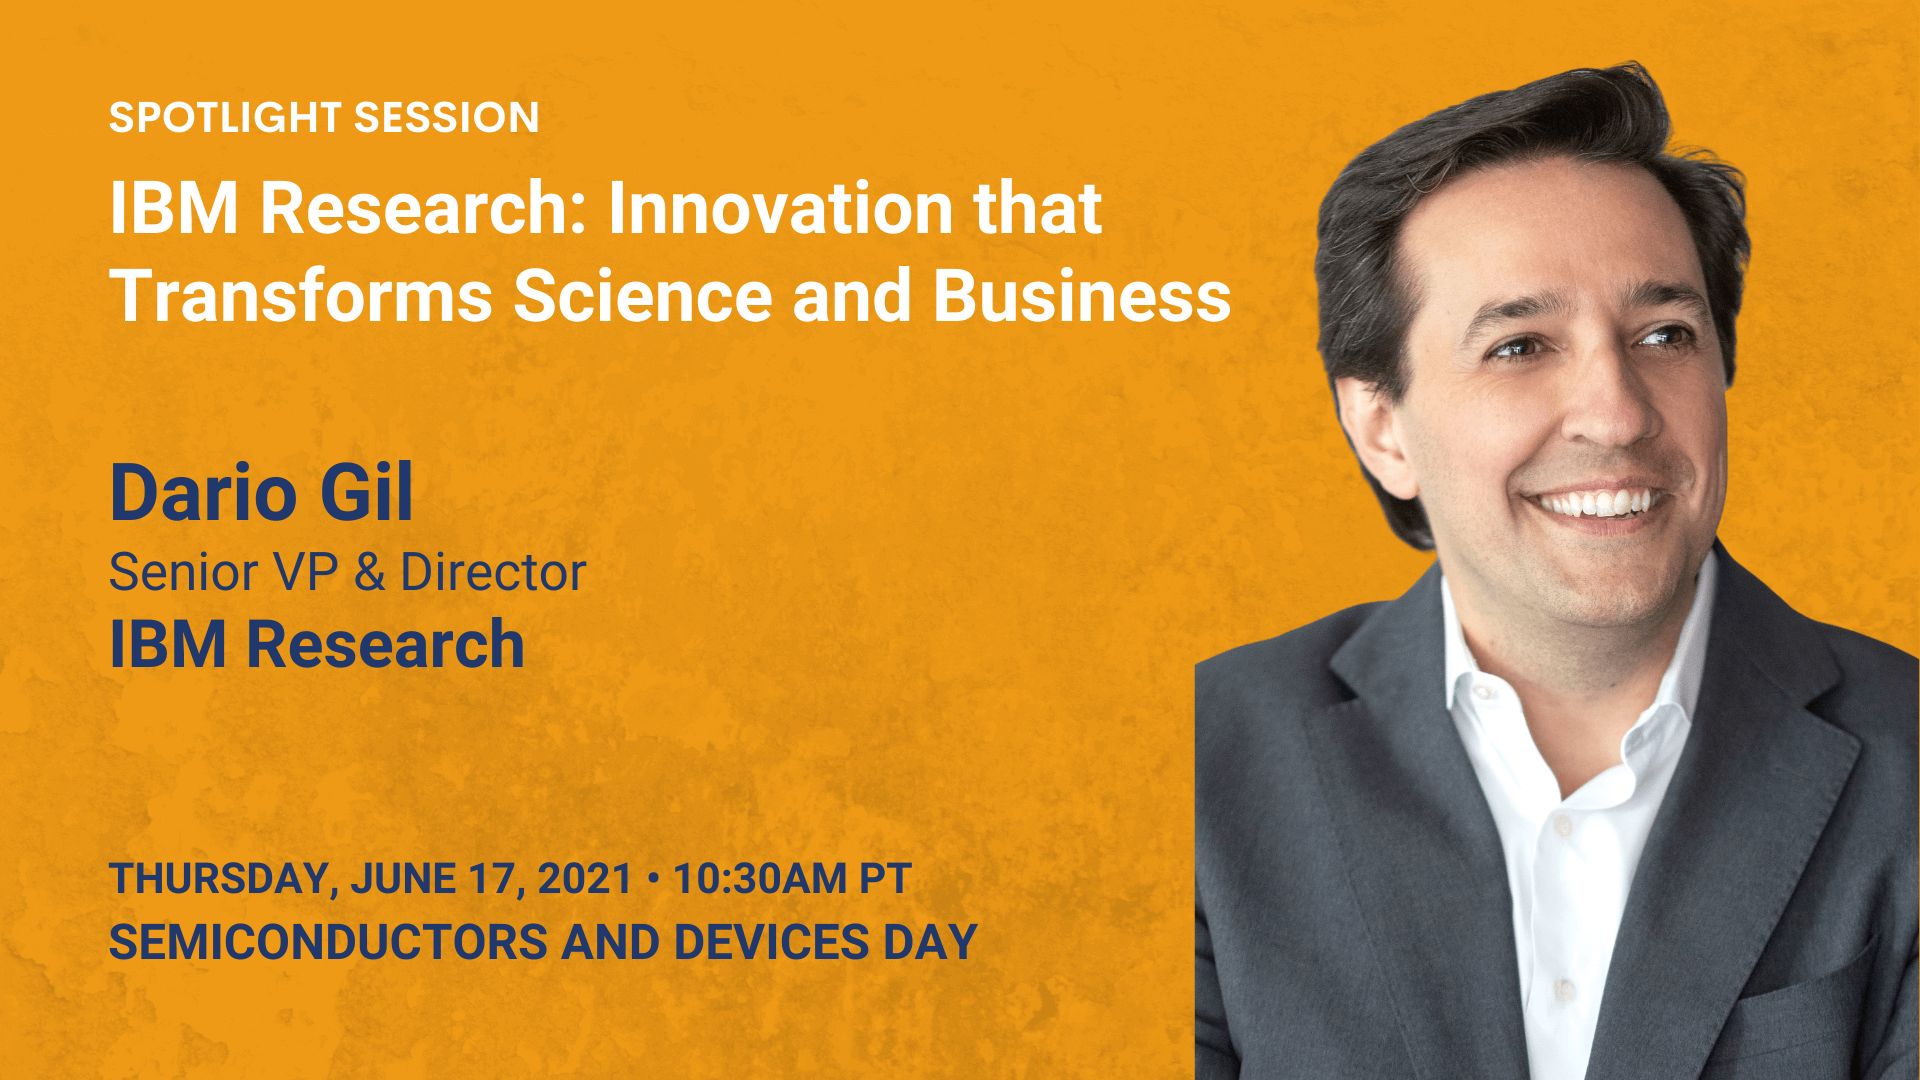 IBM Research: Innovation That Transforms Science and Business (Dario Gil)